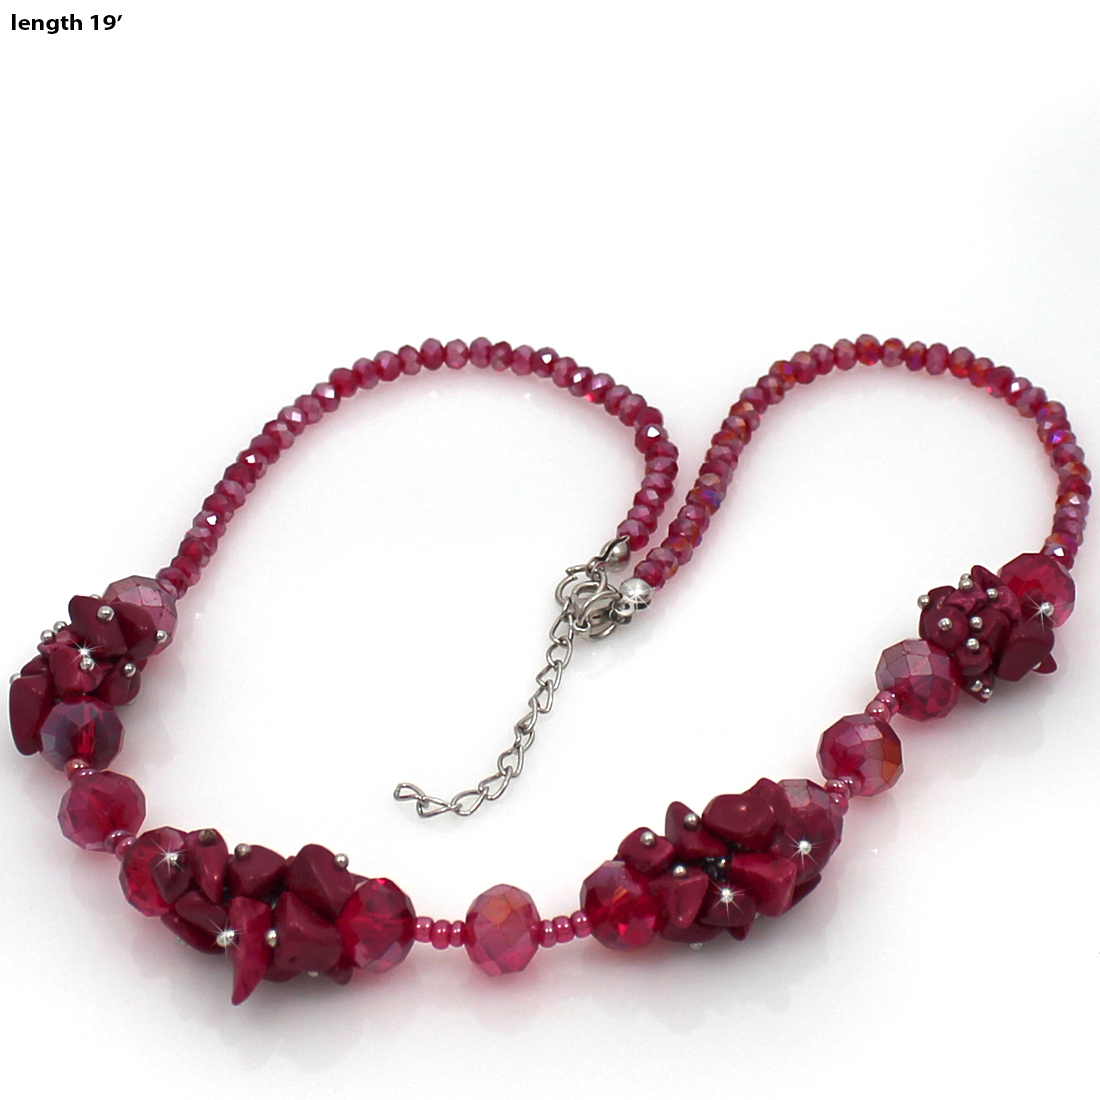 NKL03-RED - NKL03-RED WHOLESALE GENUINE CRYSTAL AND GLASS NECKLACE SET